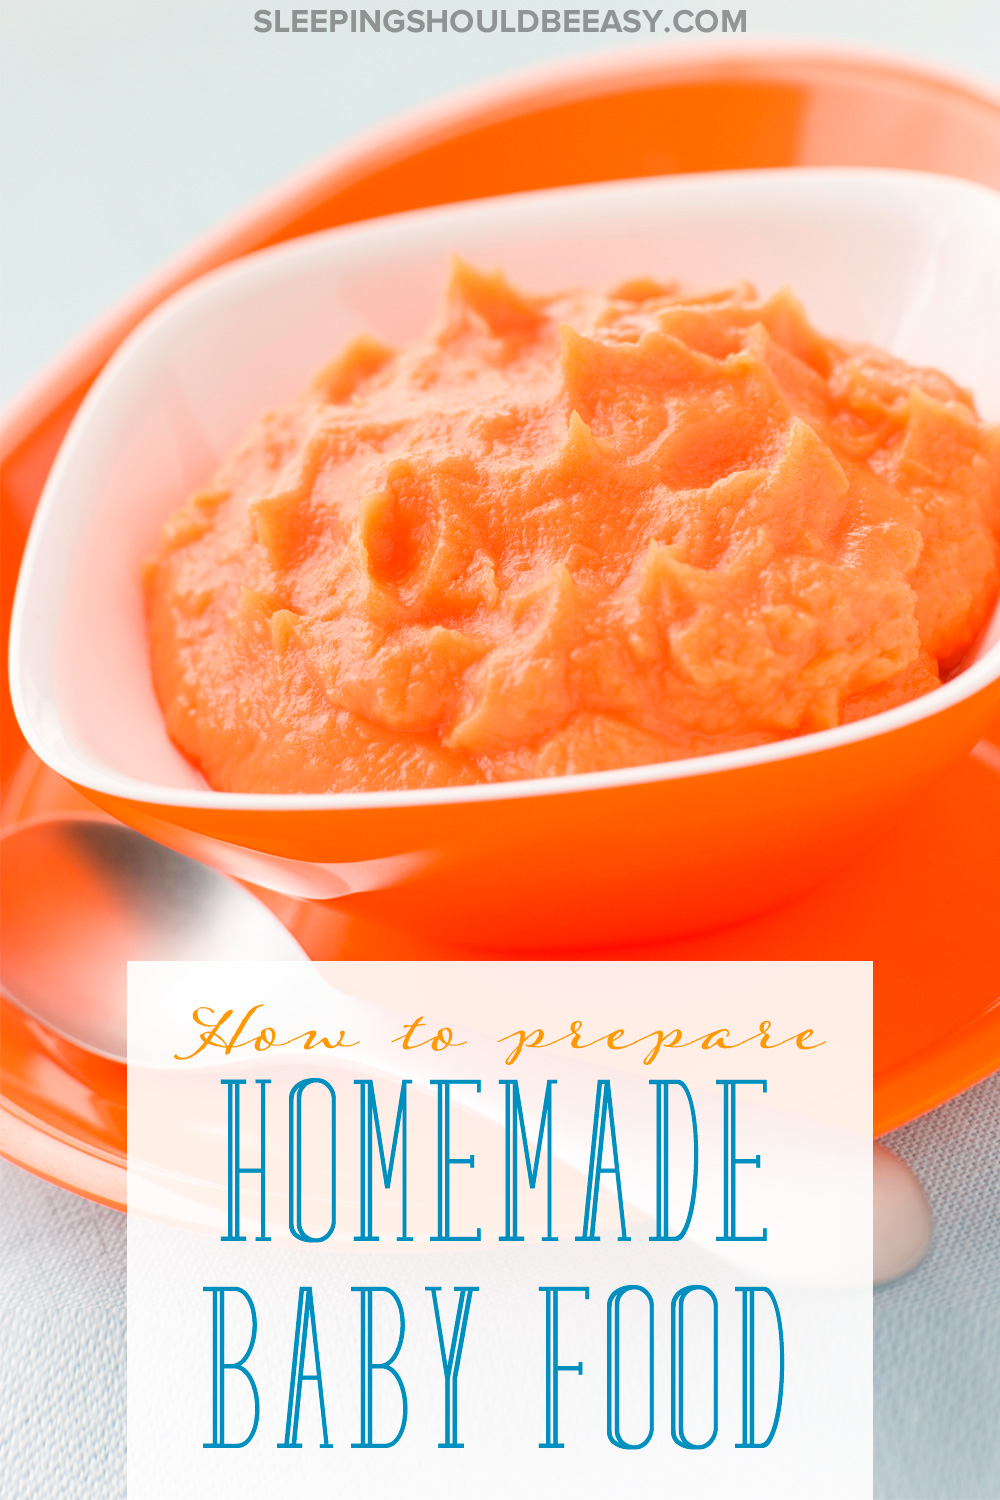 Making your own baby food can be simple, fun and save you money. Here are a few tips on how to prepare homemade baby food.